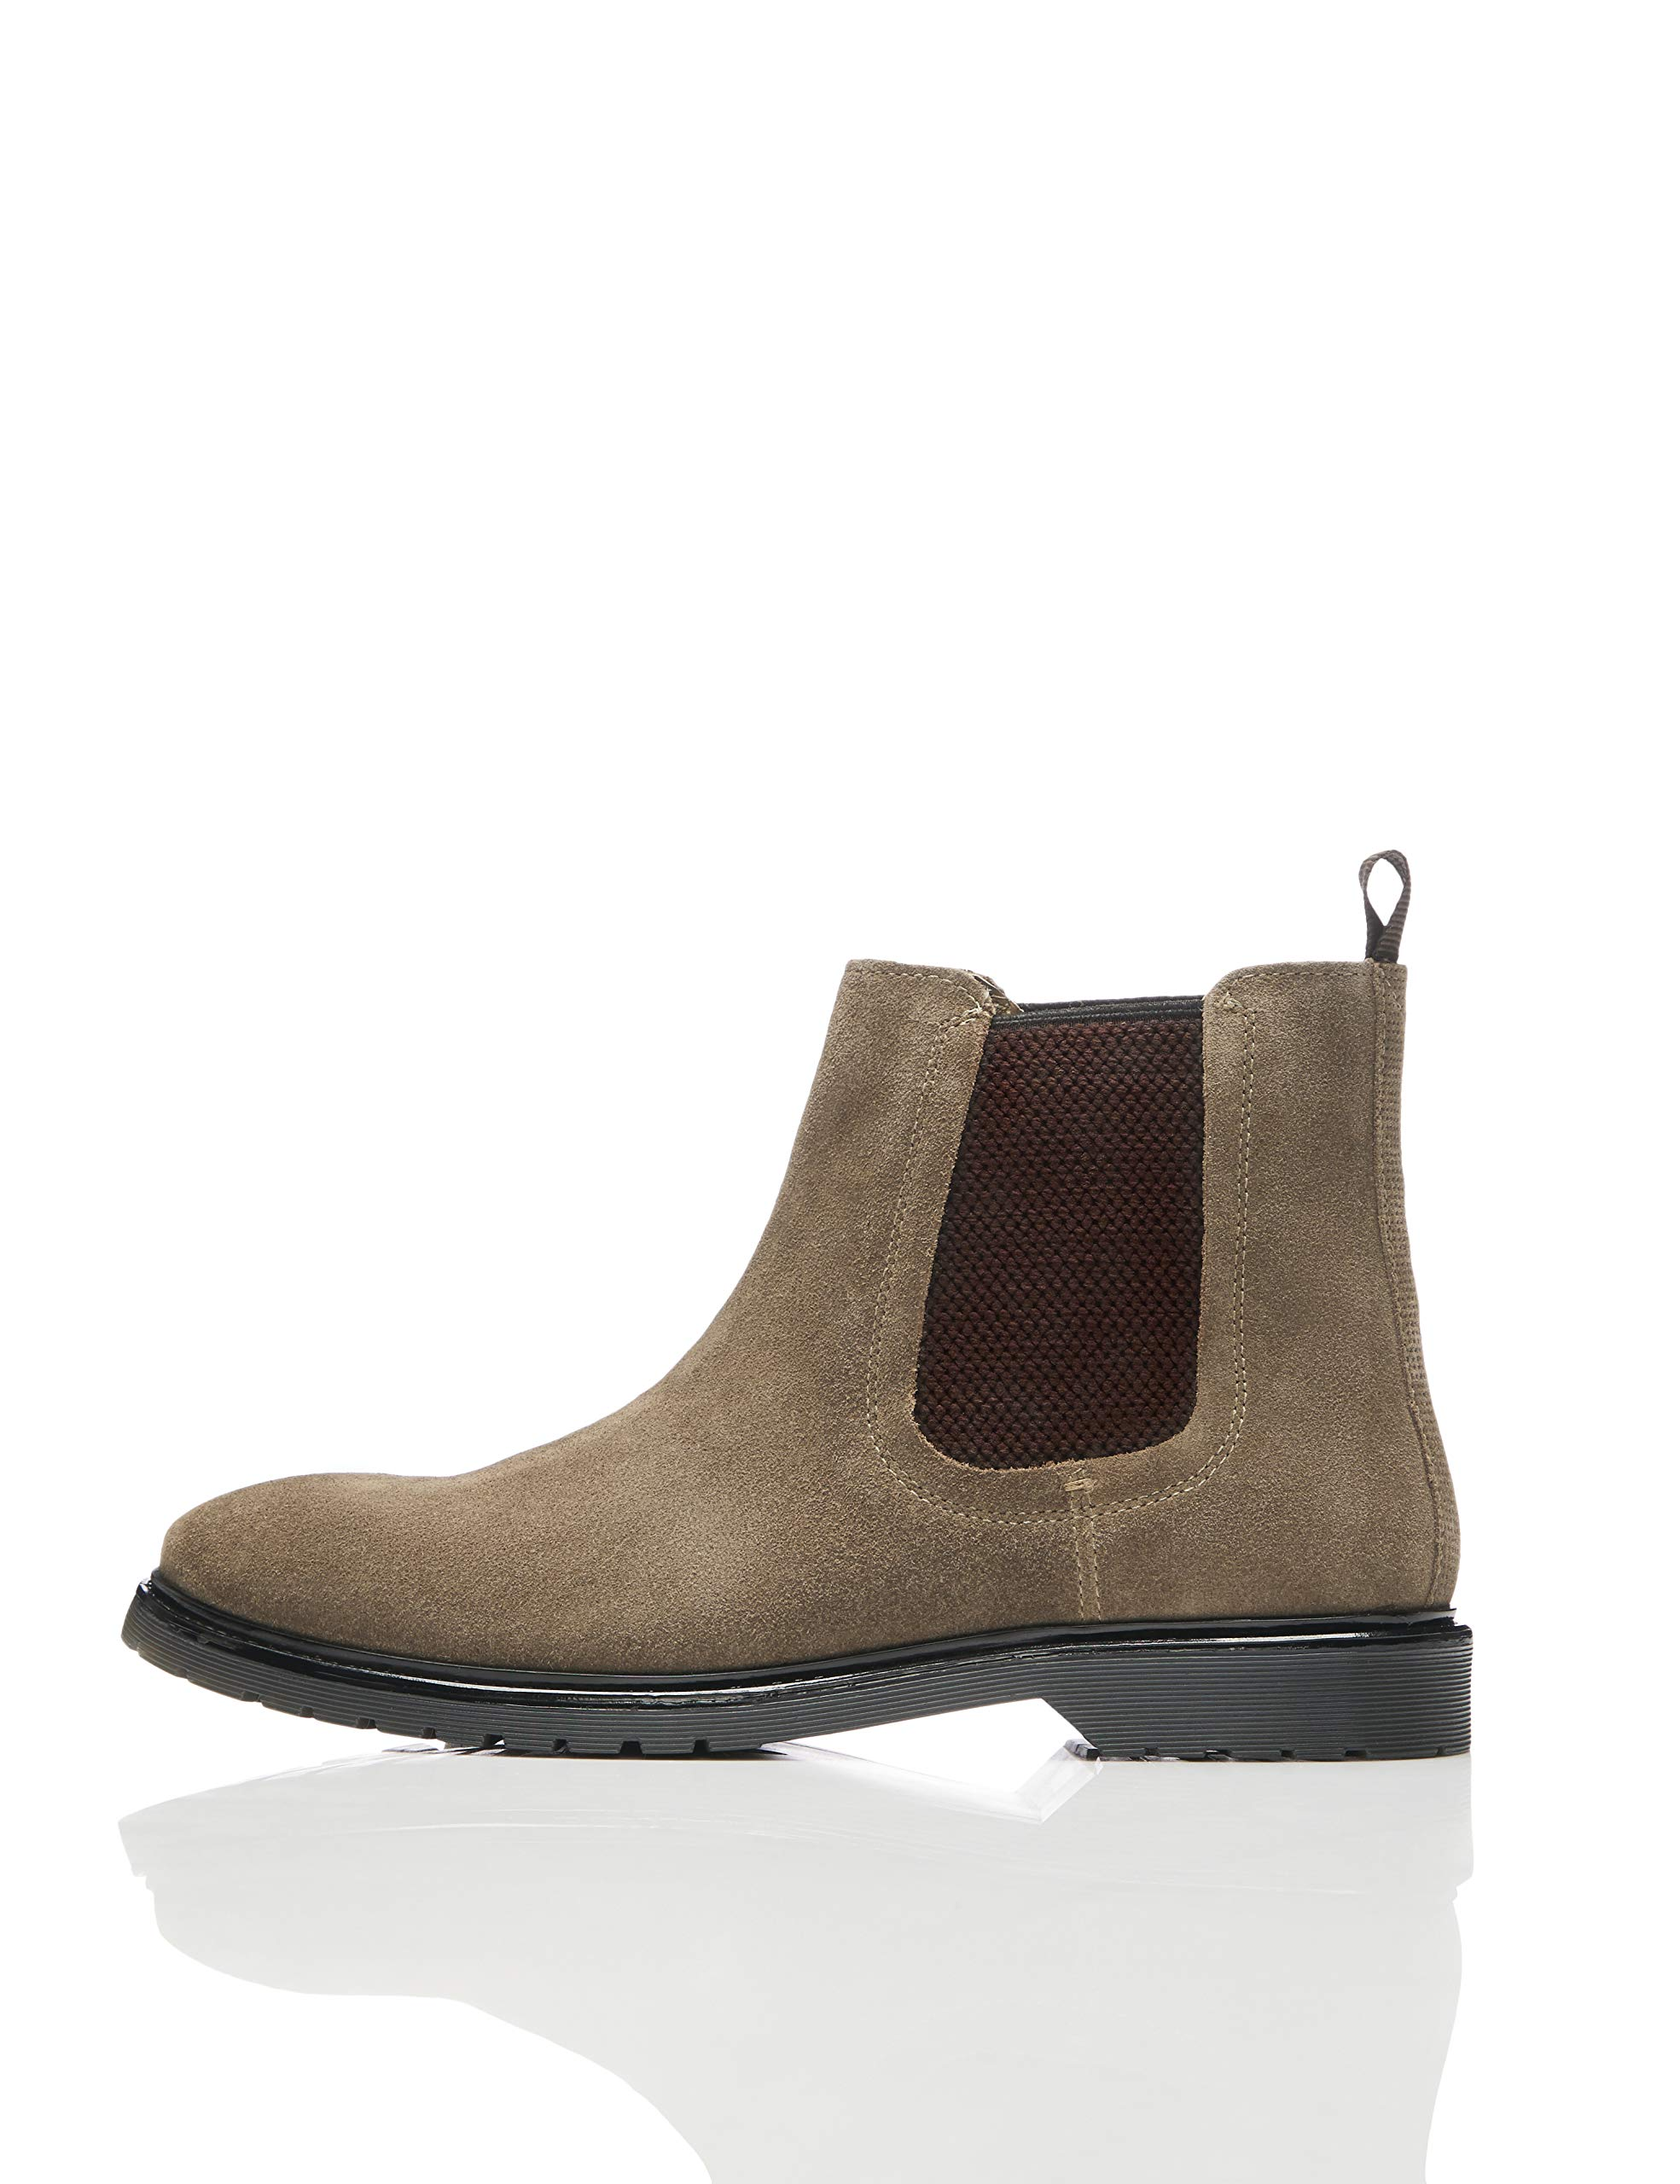 Cleated ChelseaMarron Brown47 Eu Bottes FindLeather TK13clFJ